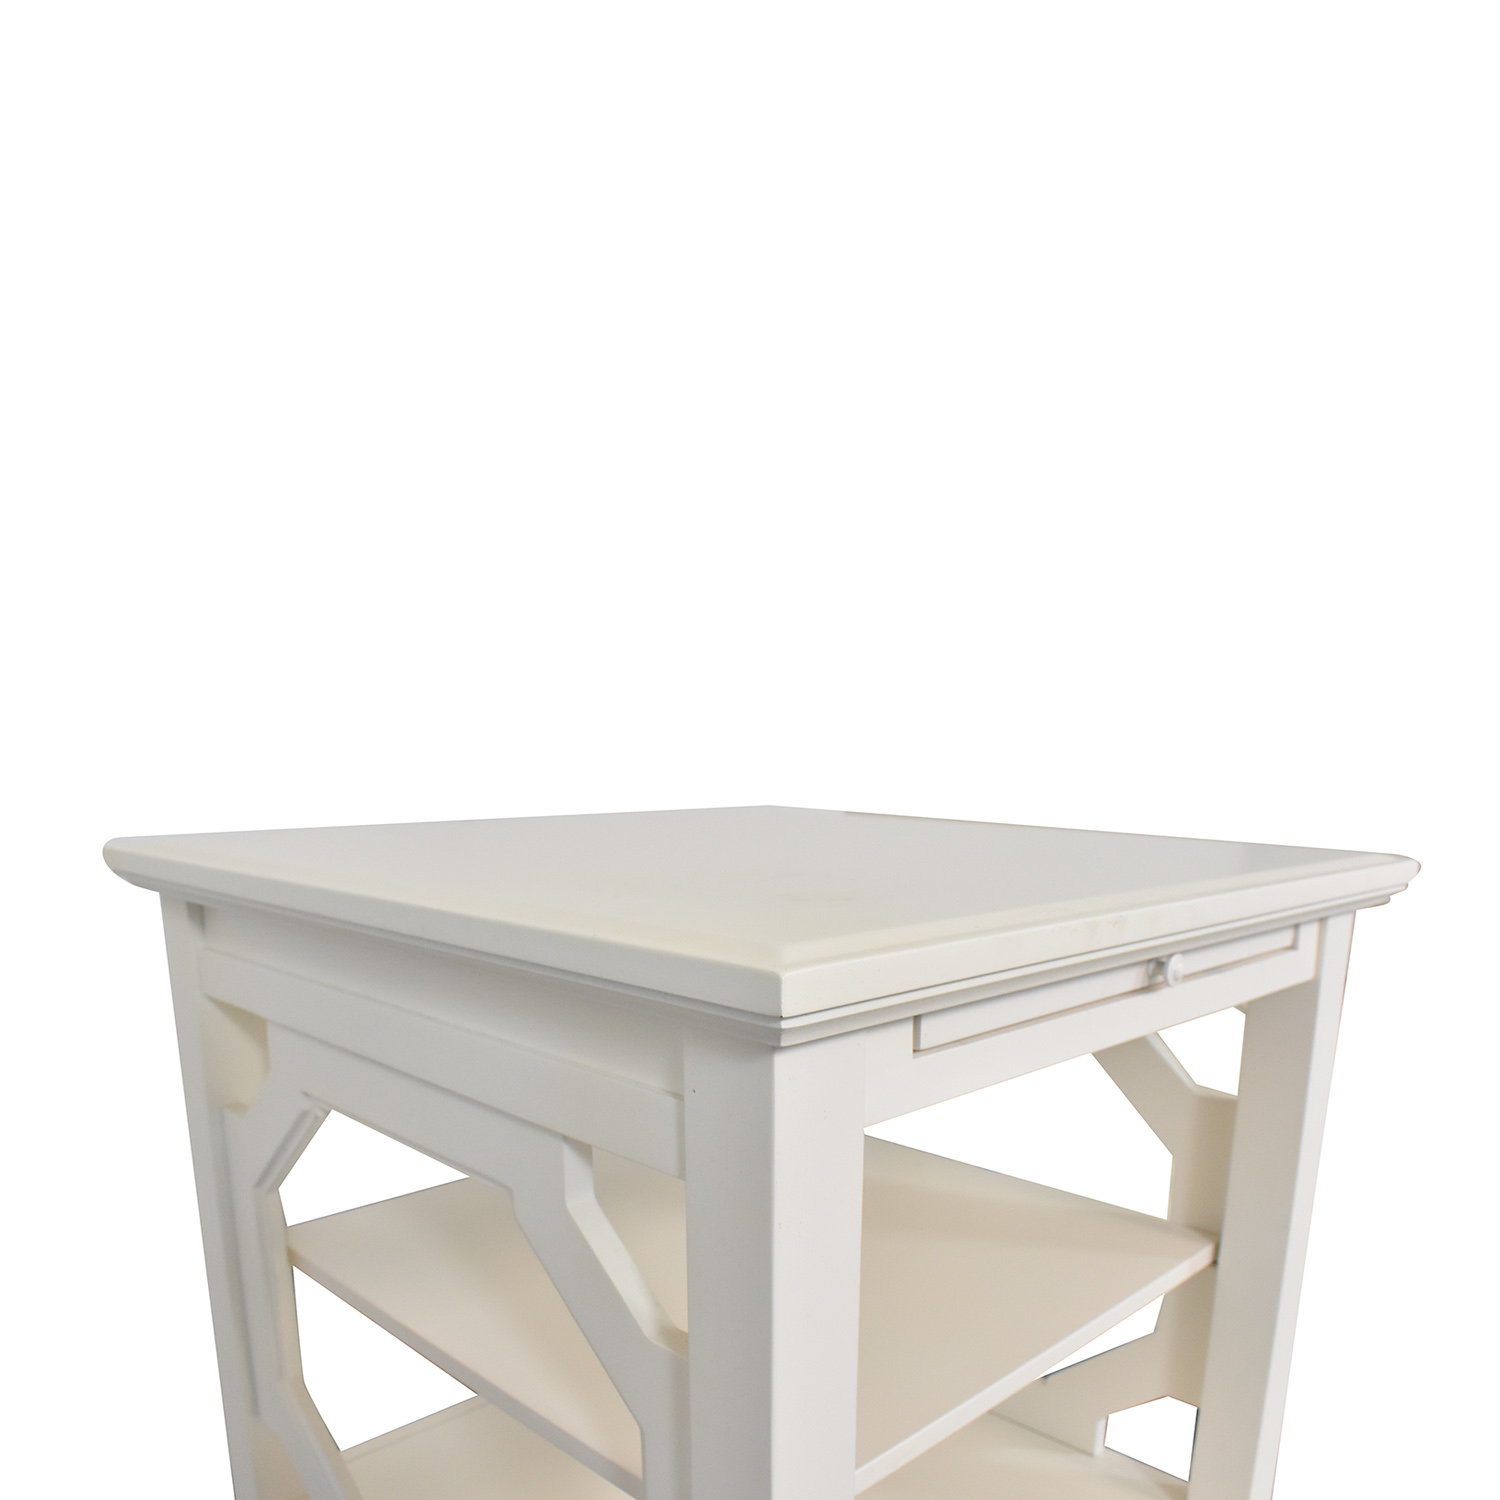 Raymour & Flanigan End Tables sale